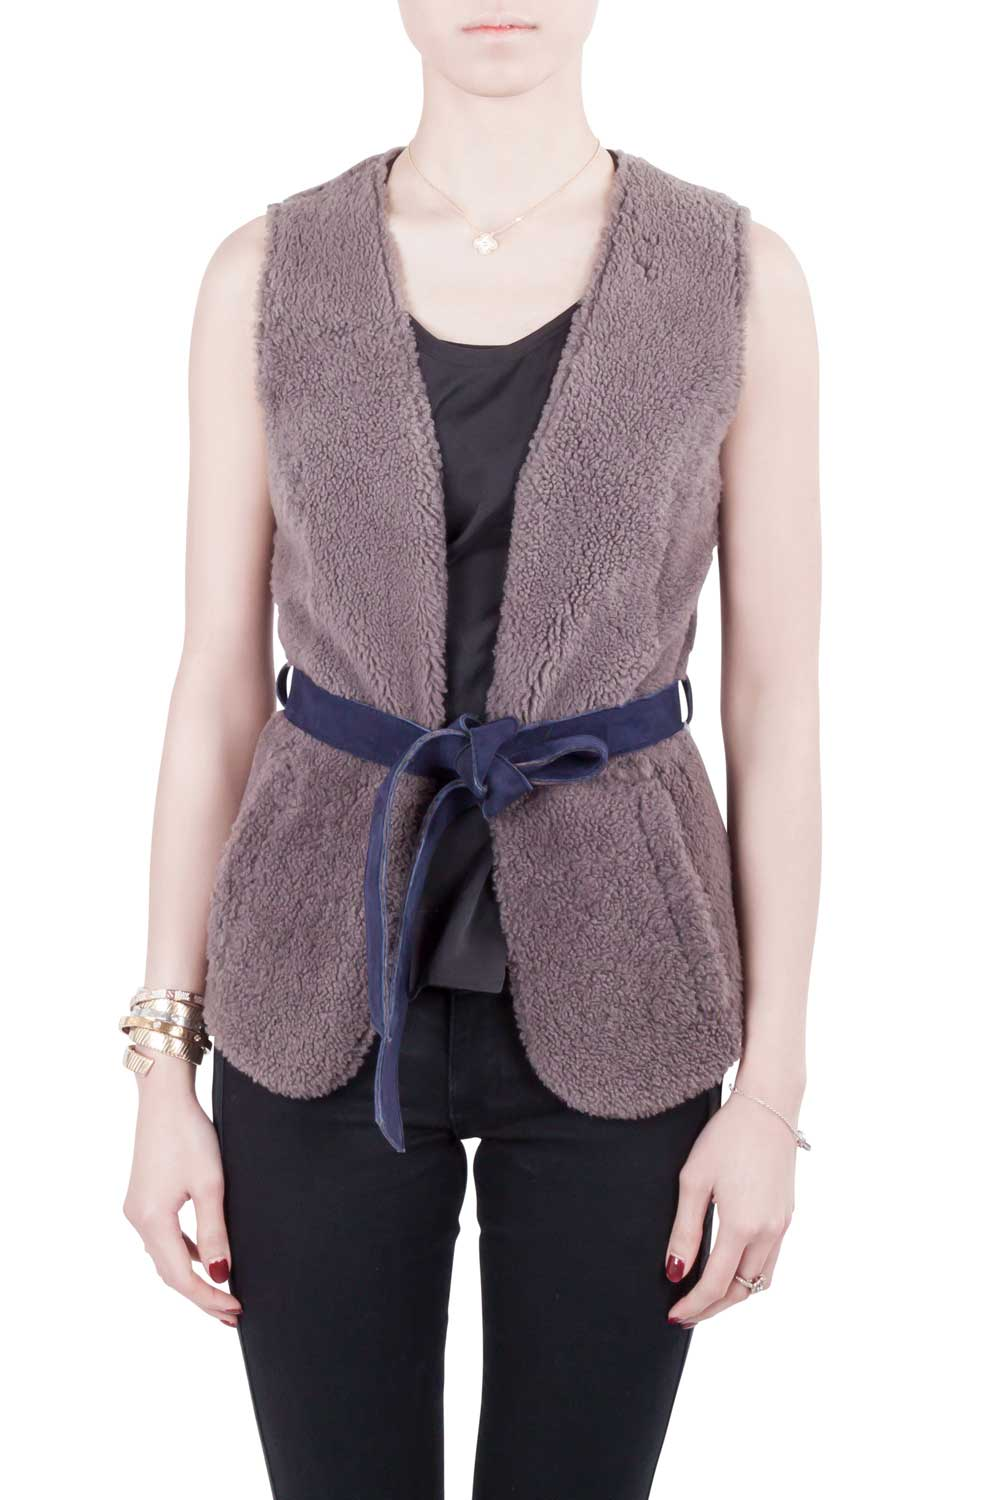 Moschino Cheap and Chic Gray Lamb Fur Leather Lined Belted Gilet S